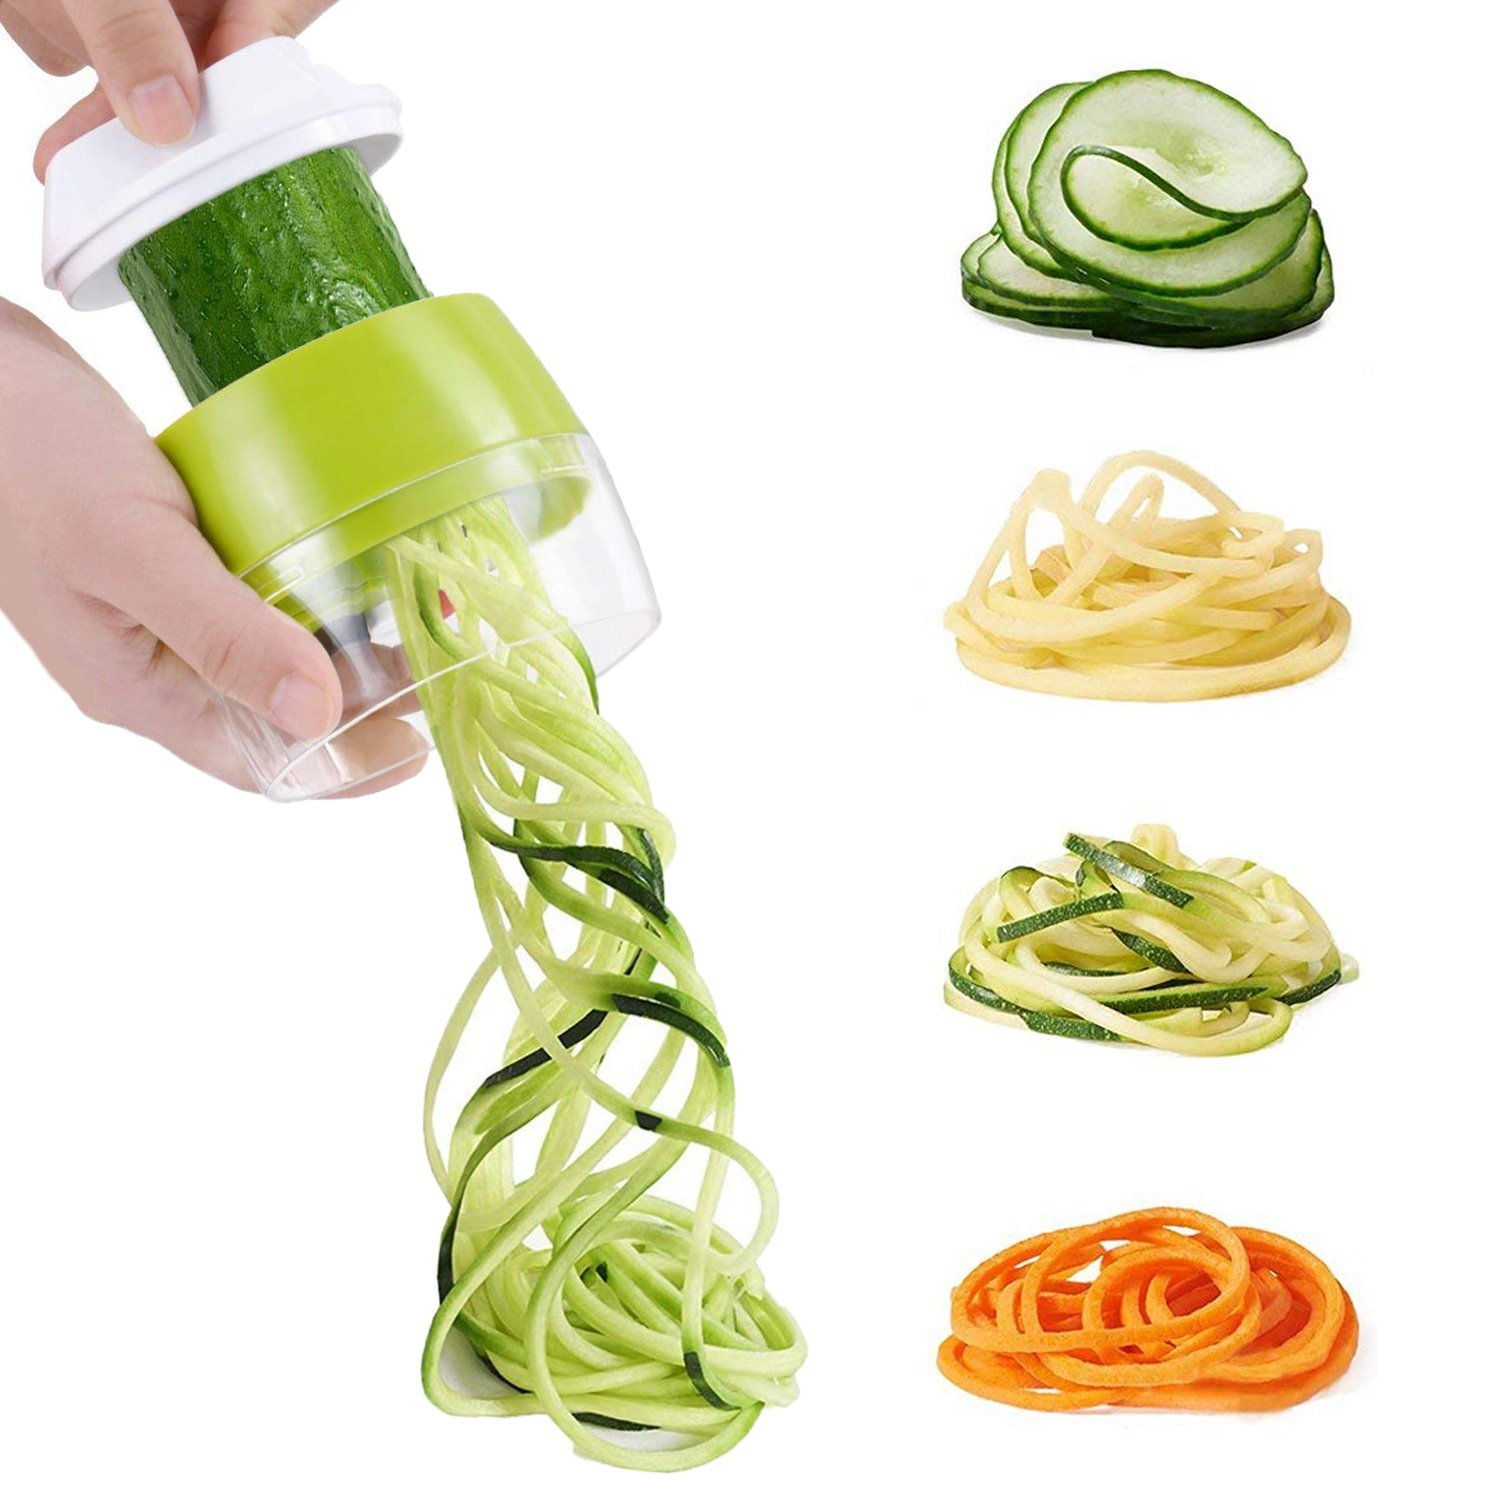 Handheld Vegetable Spiralizer, MengK 3-Blade Good Grips Vegetable Slicer - Veggie Spiral Slicer Cutter for Noodle Maker Pasta Zucchini Spiral Maker - Green PSQ01